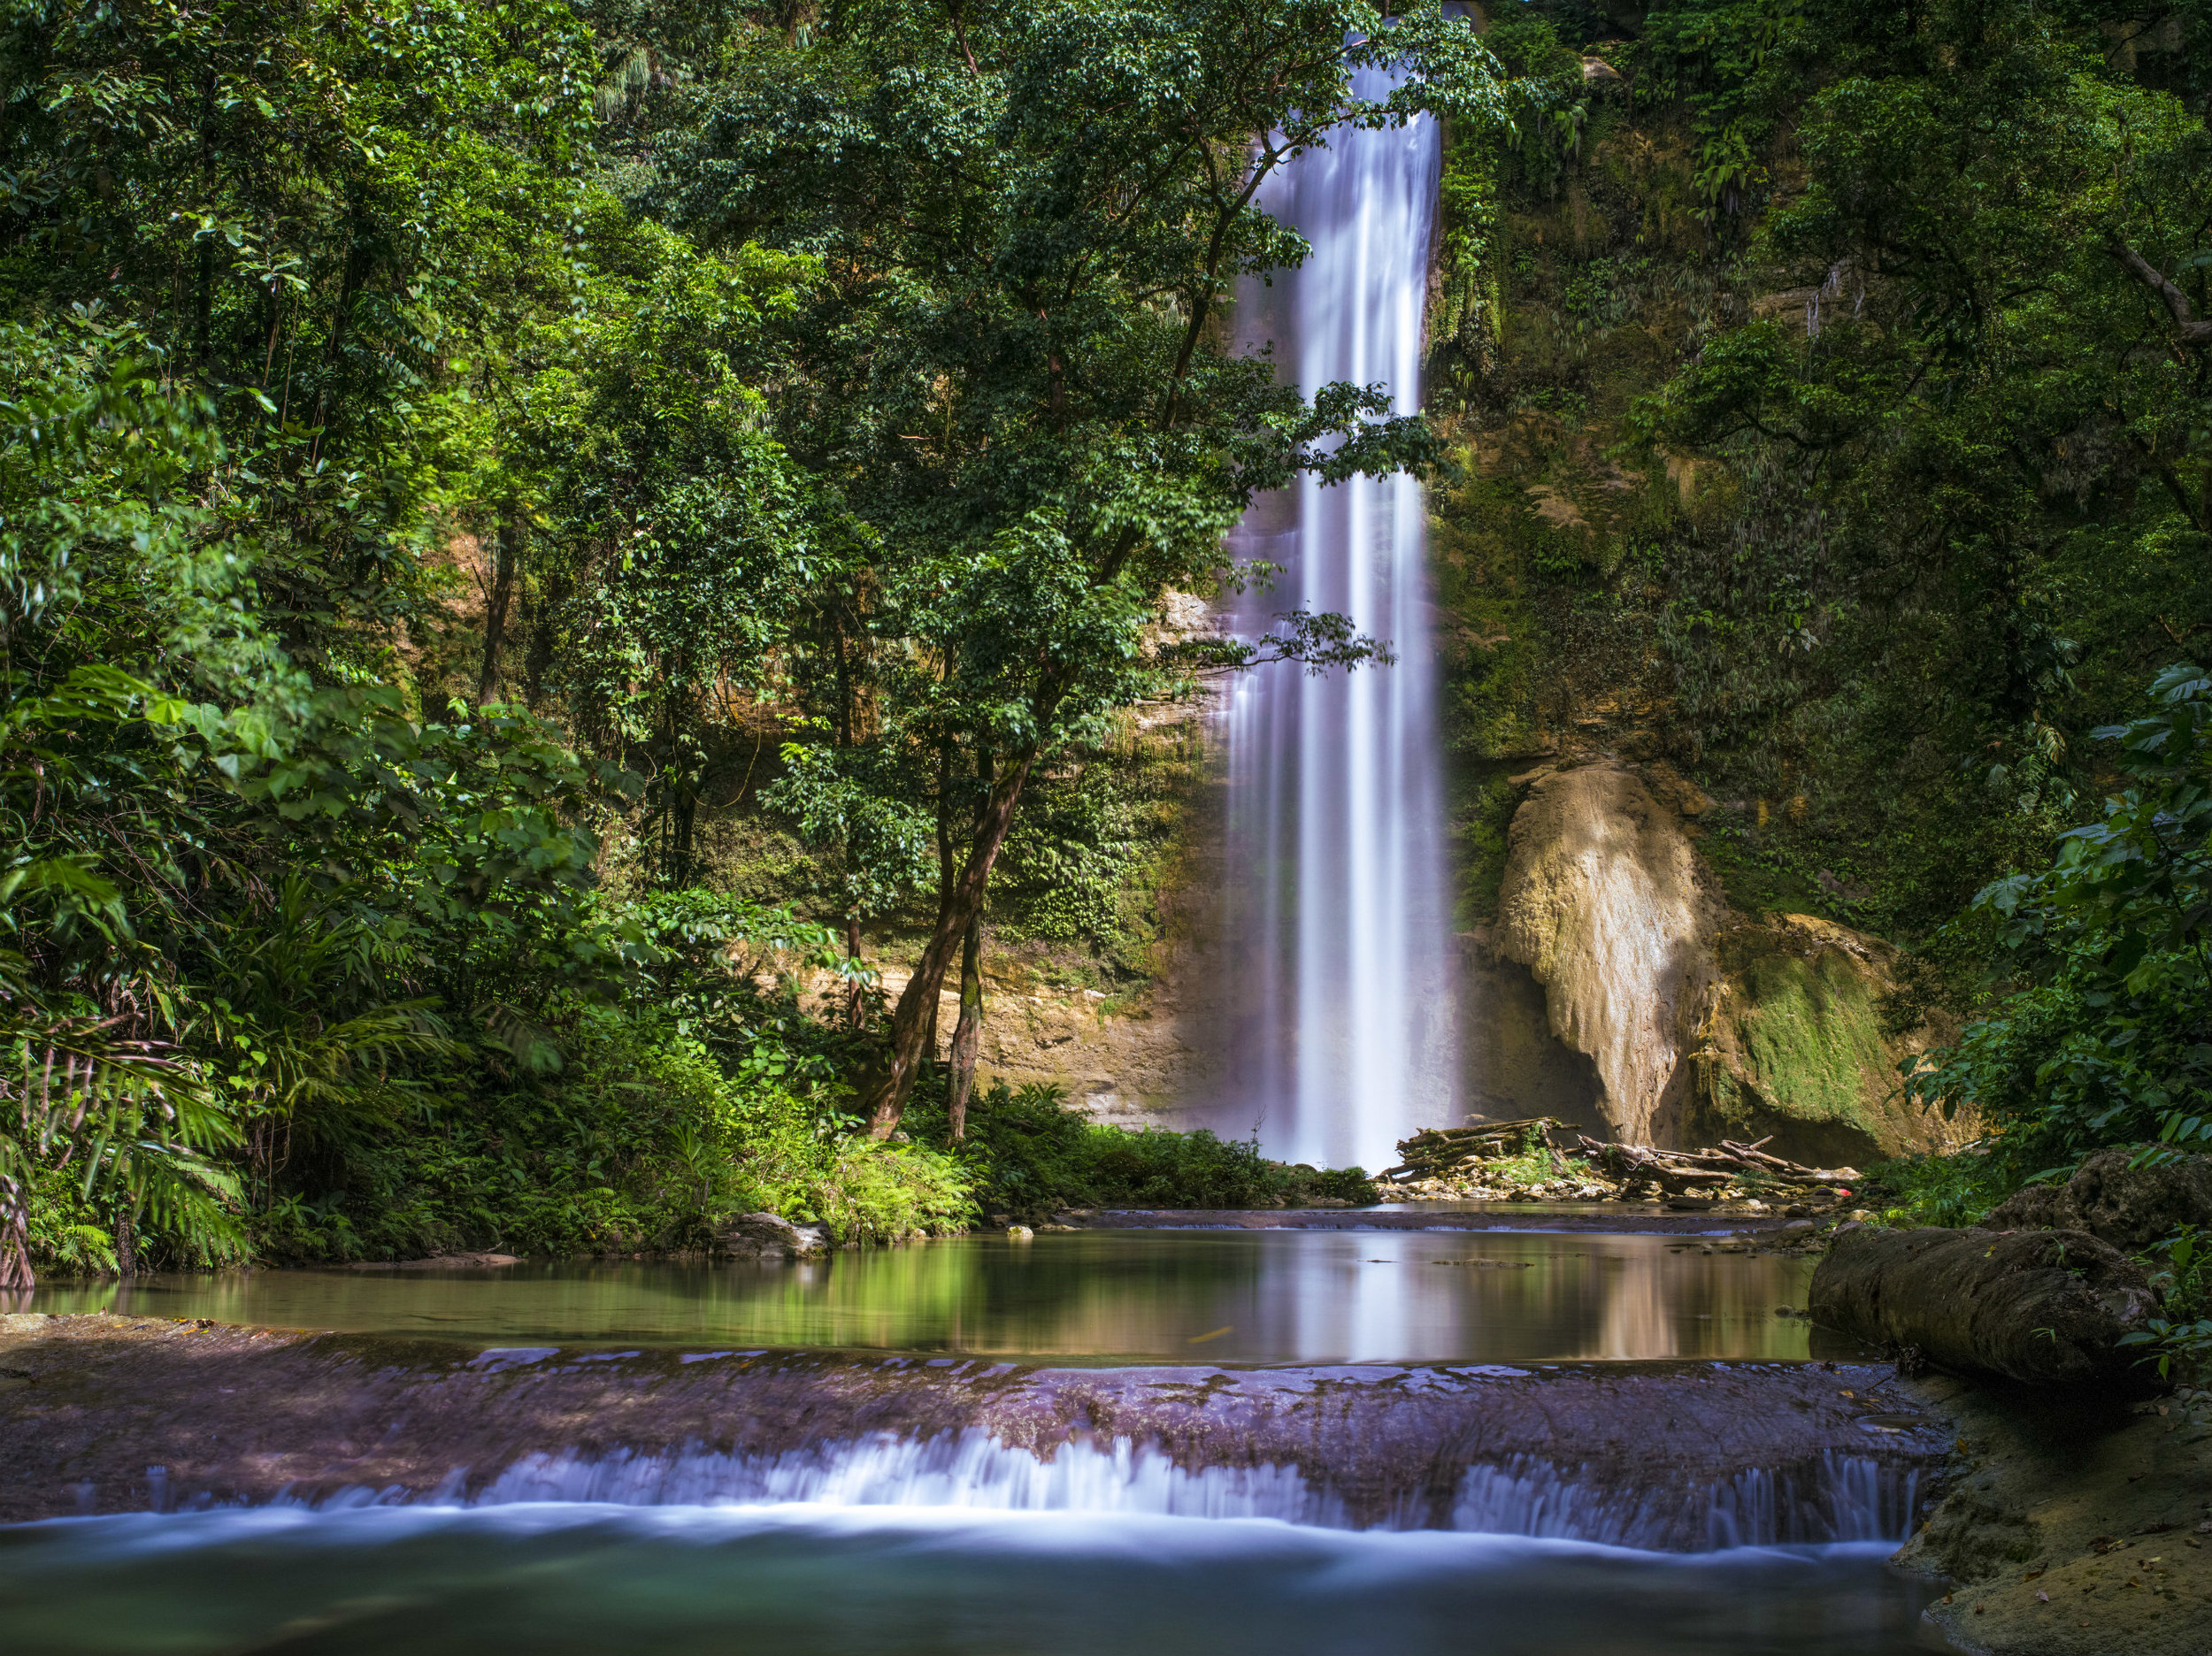 Tenaru Waterfall Tour - 6 HoursYour tour guide will collect you from your hotel or rest house and travel east, past Henderson Airfield over Alligator Creek through Tenaru Village to the spot that you will begin the walk to the Waterfall. The local guide and custom land owner will point out many interesting points of interest and wildlife along the half an hour walk to the beautiful waterfalls were you can swim and enjoy the picturesque landscape. If you are willing to adventure further, you can walk another 30 minutes to a cave with Bats and custom drawings. This adventure is a must on Guadalcanal.1 Person $184 AUD PP2- 4 People $160 AUD PP5 + People $140 AUD PP*Please Note: This tour is suitable for those with a reasonable level of fitness and are able bodied, as there is substantial about of walking on rocky terrain.